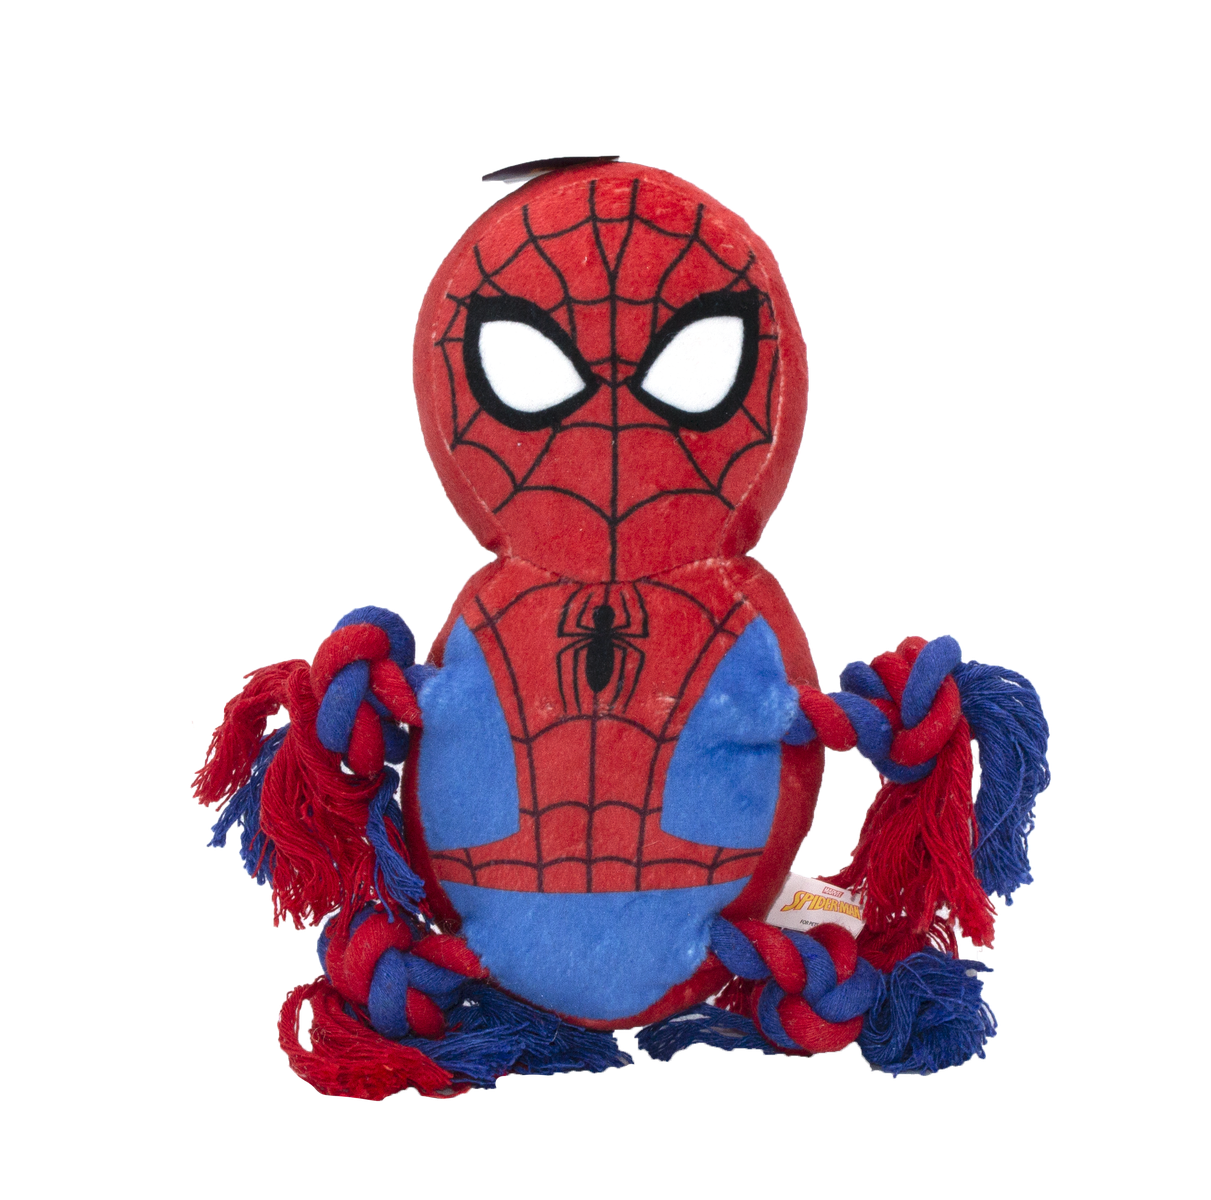 Fetch For Pets Fetch For Pets Marvel Spiderman Rope Buddy Toy